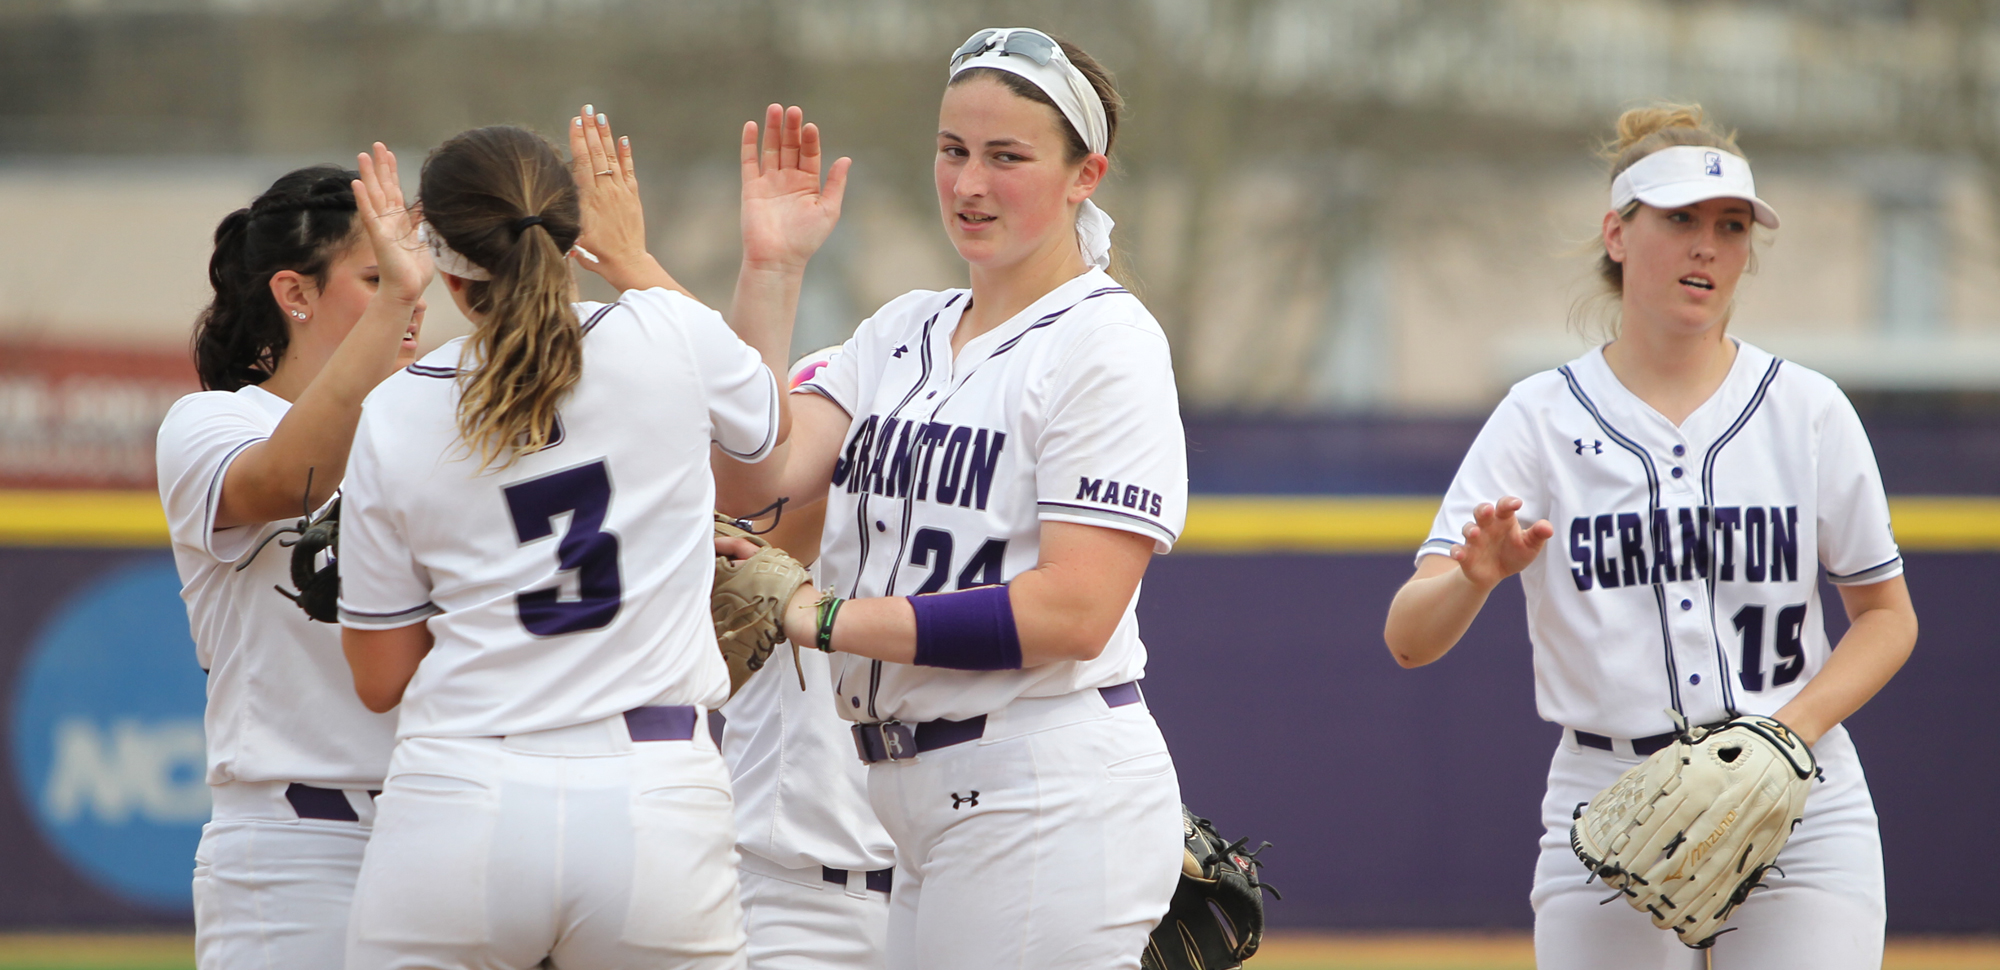 The University of Scranton softball team will play in the Landmark Conference Championships for the seventh time in program history beginning on Friday, as the fourth-seeded Royals take on top-seed and host Moravian. © Photo by Timothy R. Dougherty / doubleeaglephotography.com